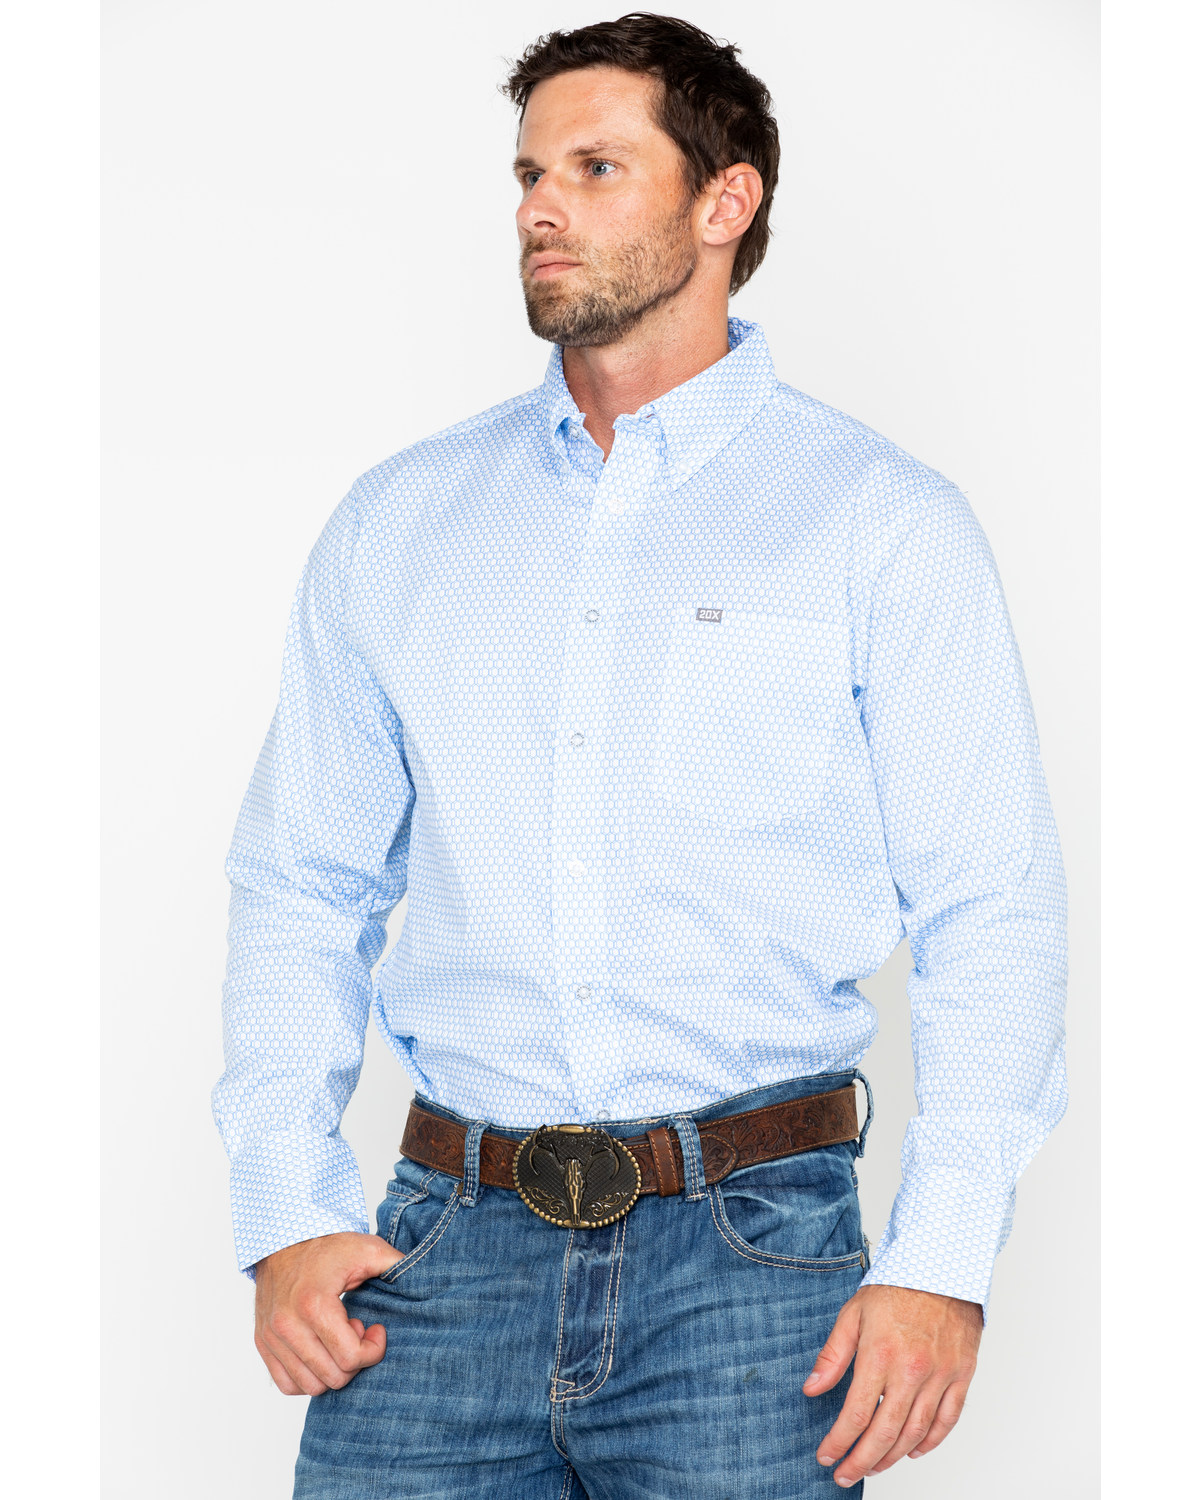 2aeda5cf302a5 Wrangler 20X Men s Periwinkle Performance Long Sleeve Western Shirt ...